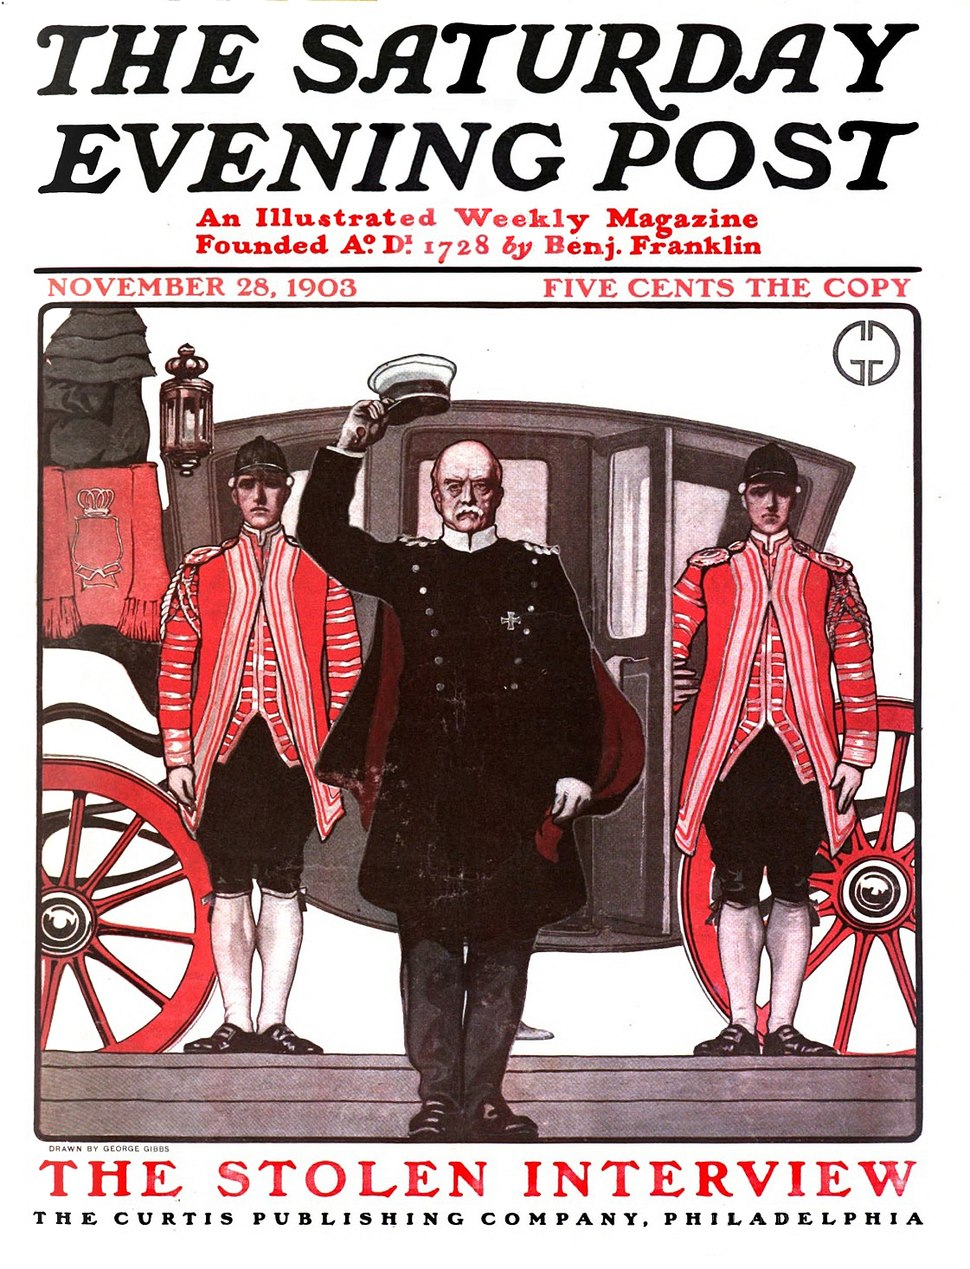 Saturday evening post 1903 11 28 a